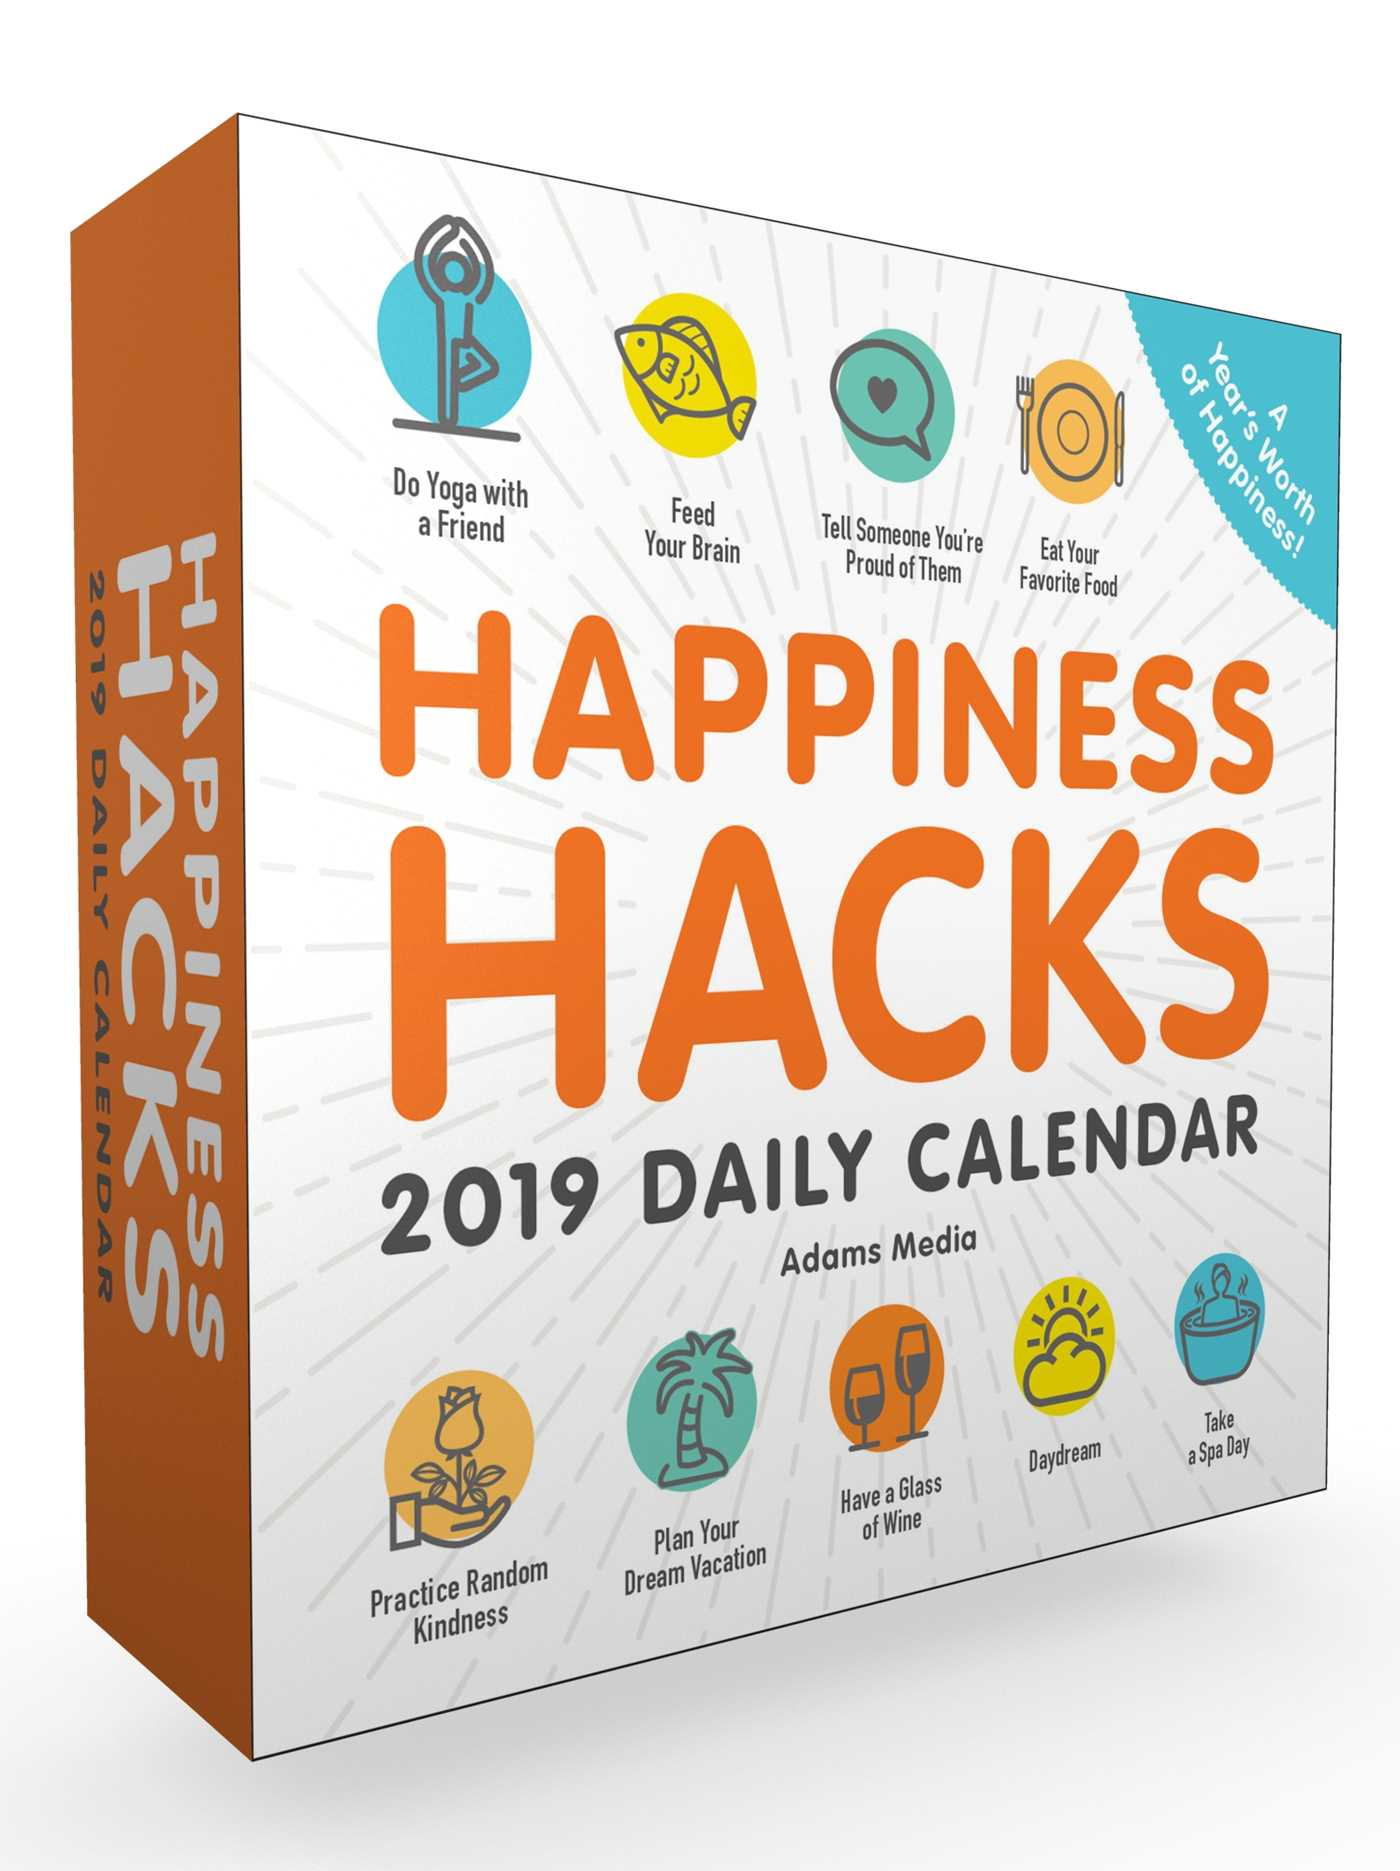 A Year Of Happiness happiness hacks 2019 daily calendar - book summary & video